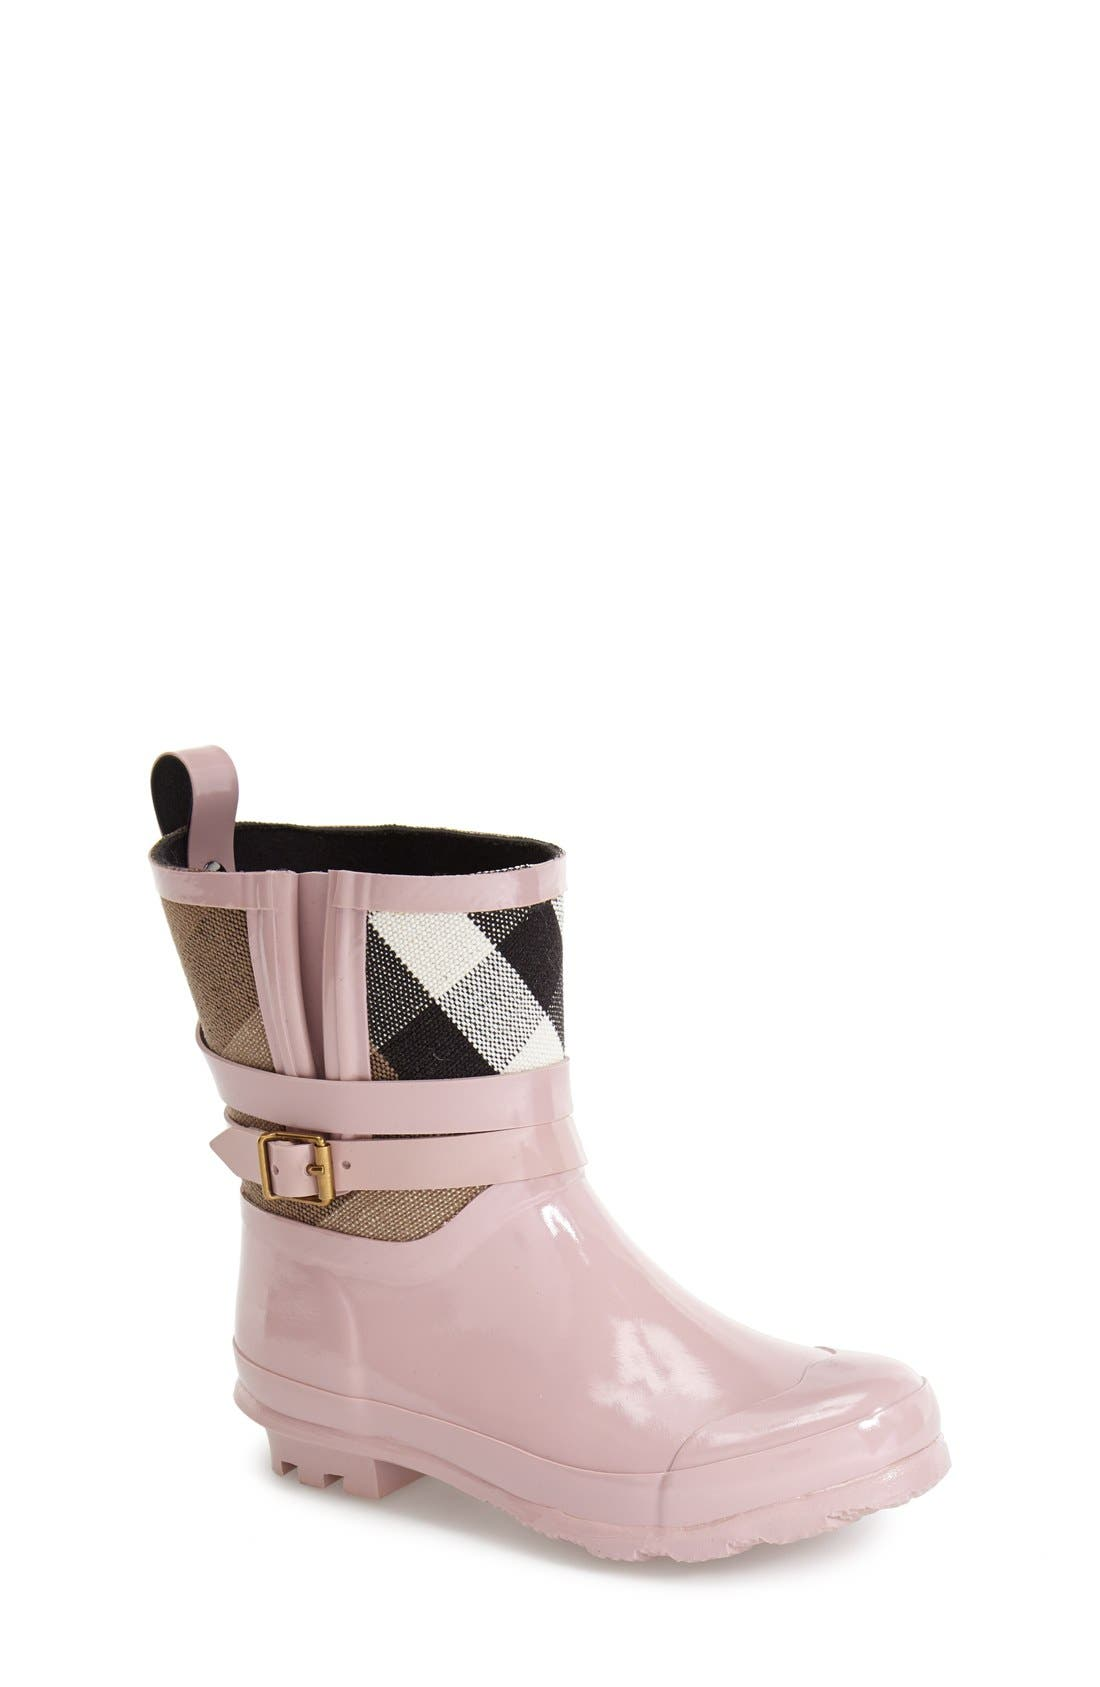 Main Image - Burberry 'Holloway' Rain Boot (Toddler & Little Kid)